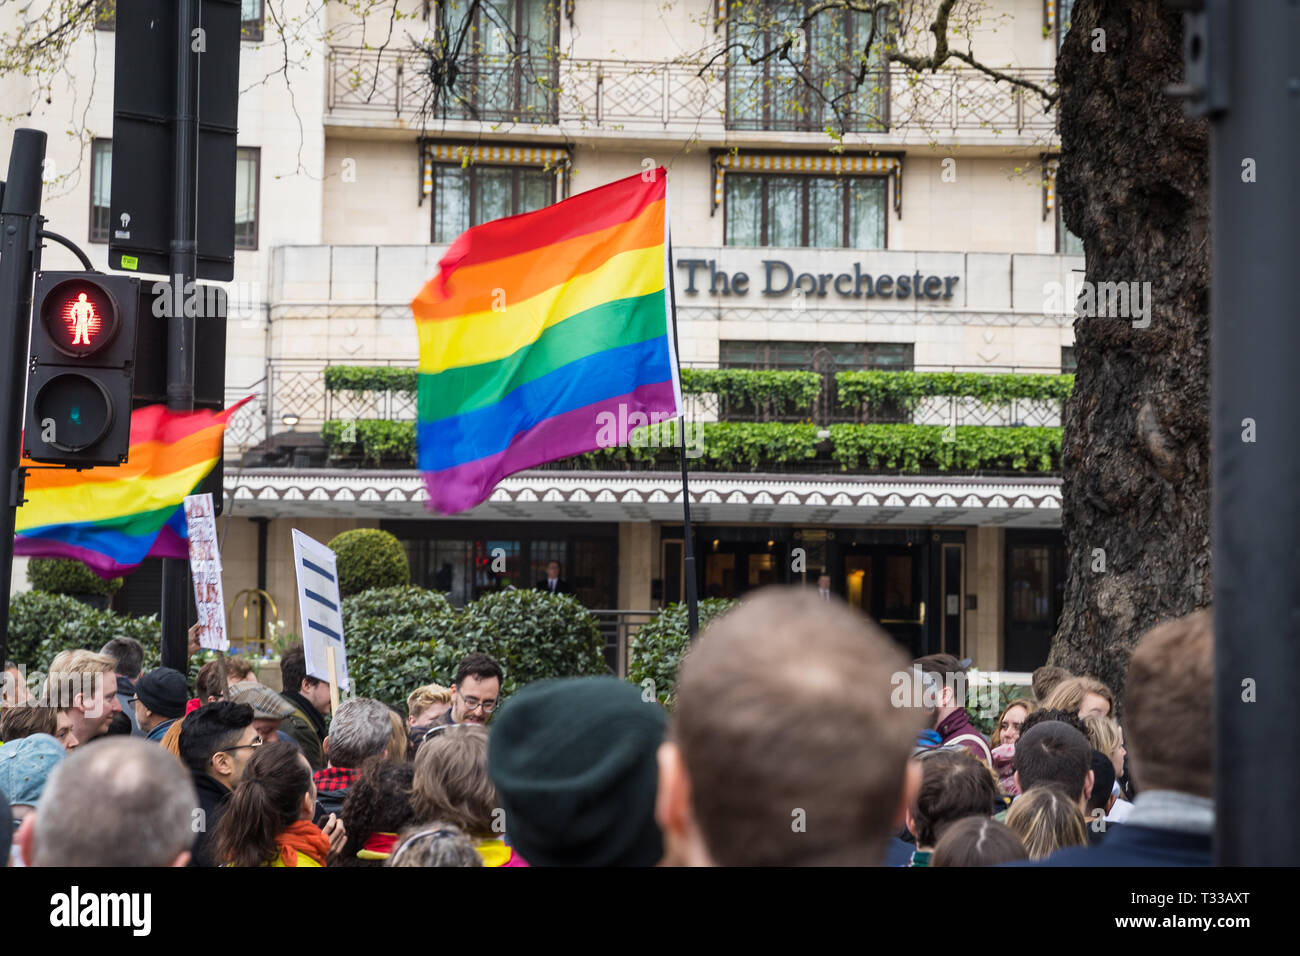 Protest outside The Dorchester hotel in London against the new Brunei anti-gay laws - 6 Apr 2019 - Stock Image